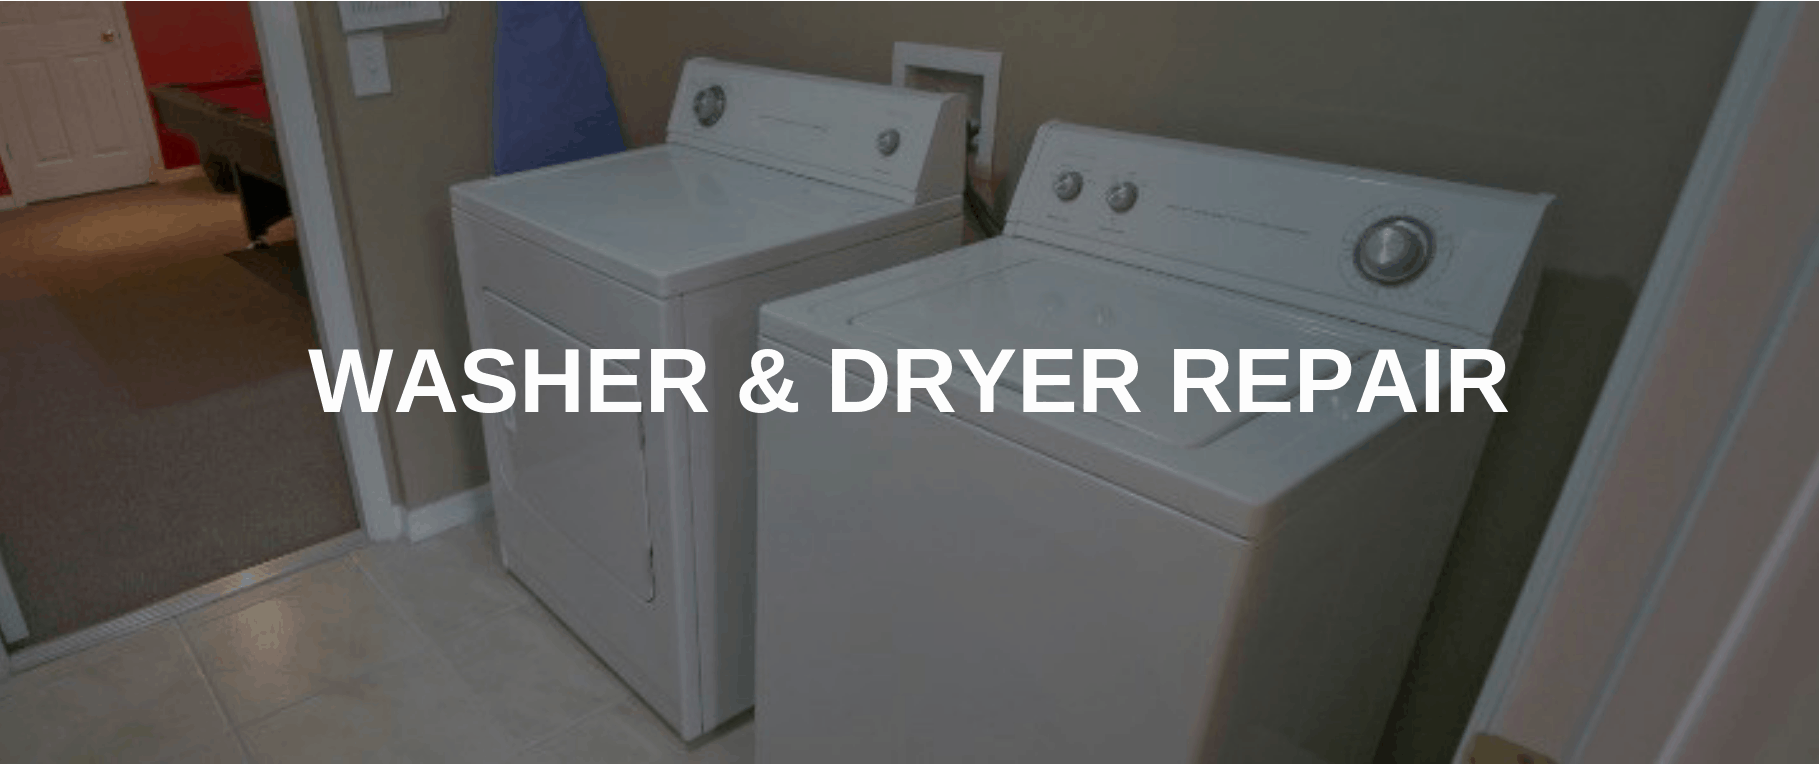 washing machine repair yonkers